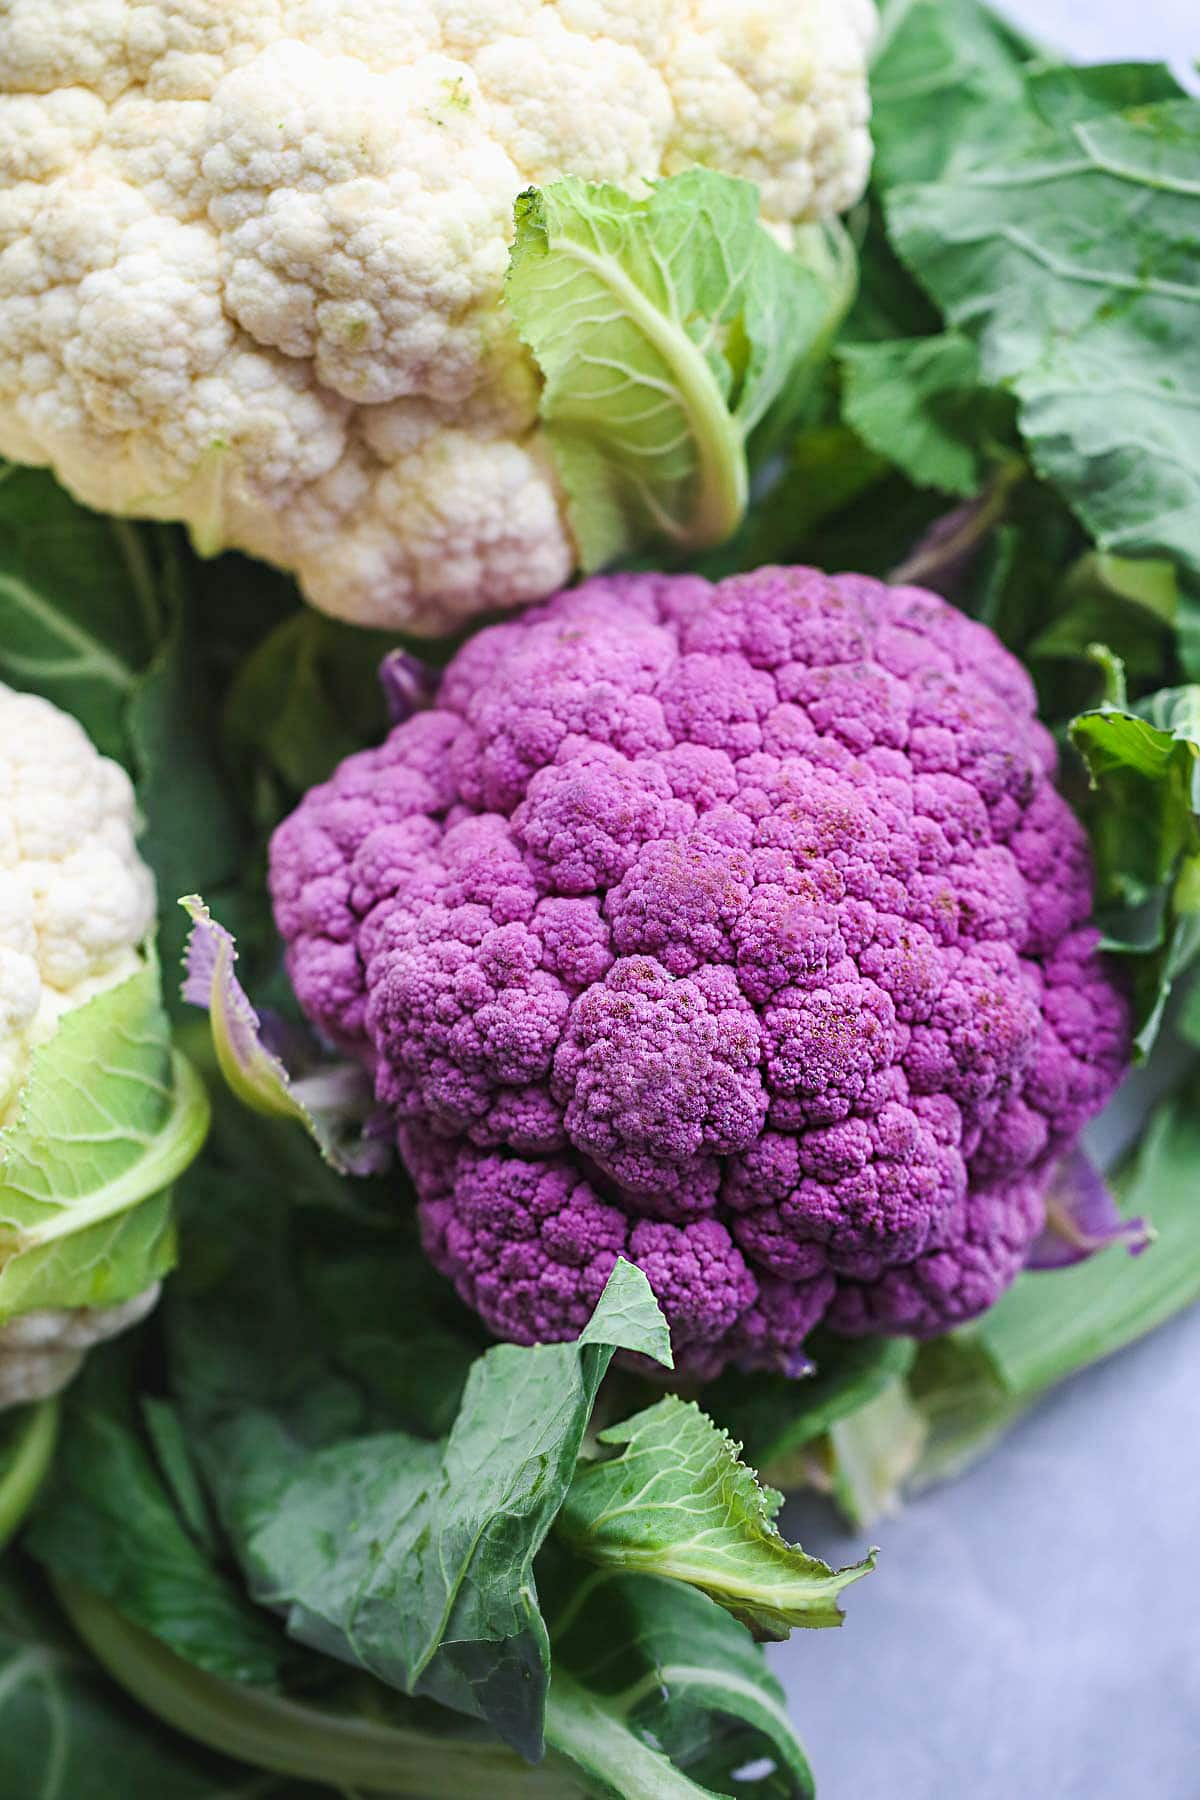 one purple cauliflower in the center and 2 white cauliflowers on the side